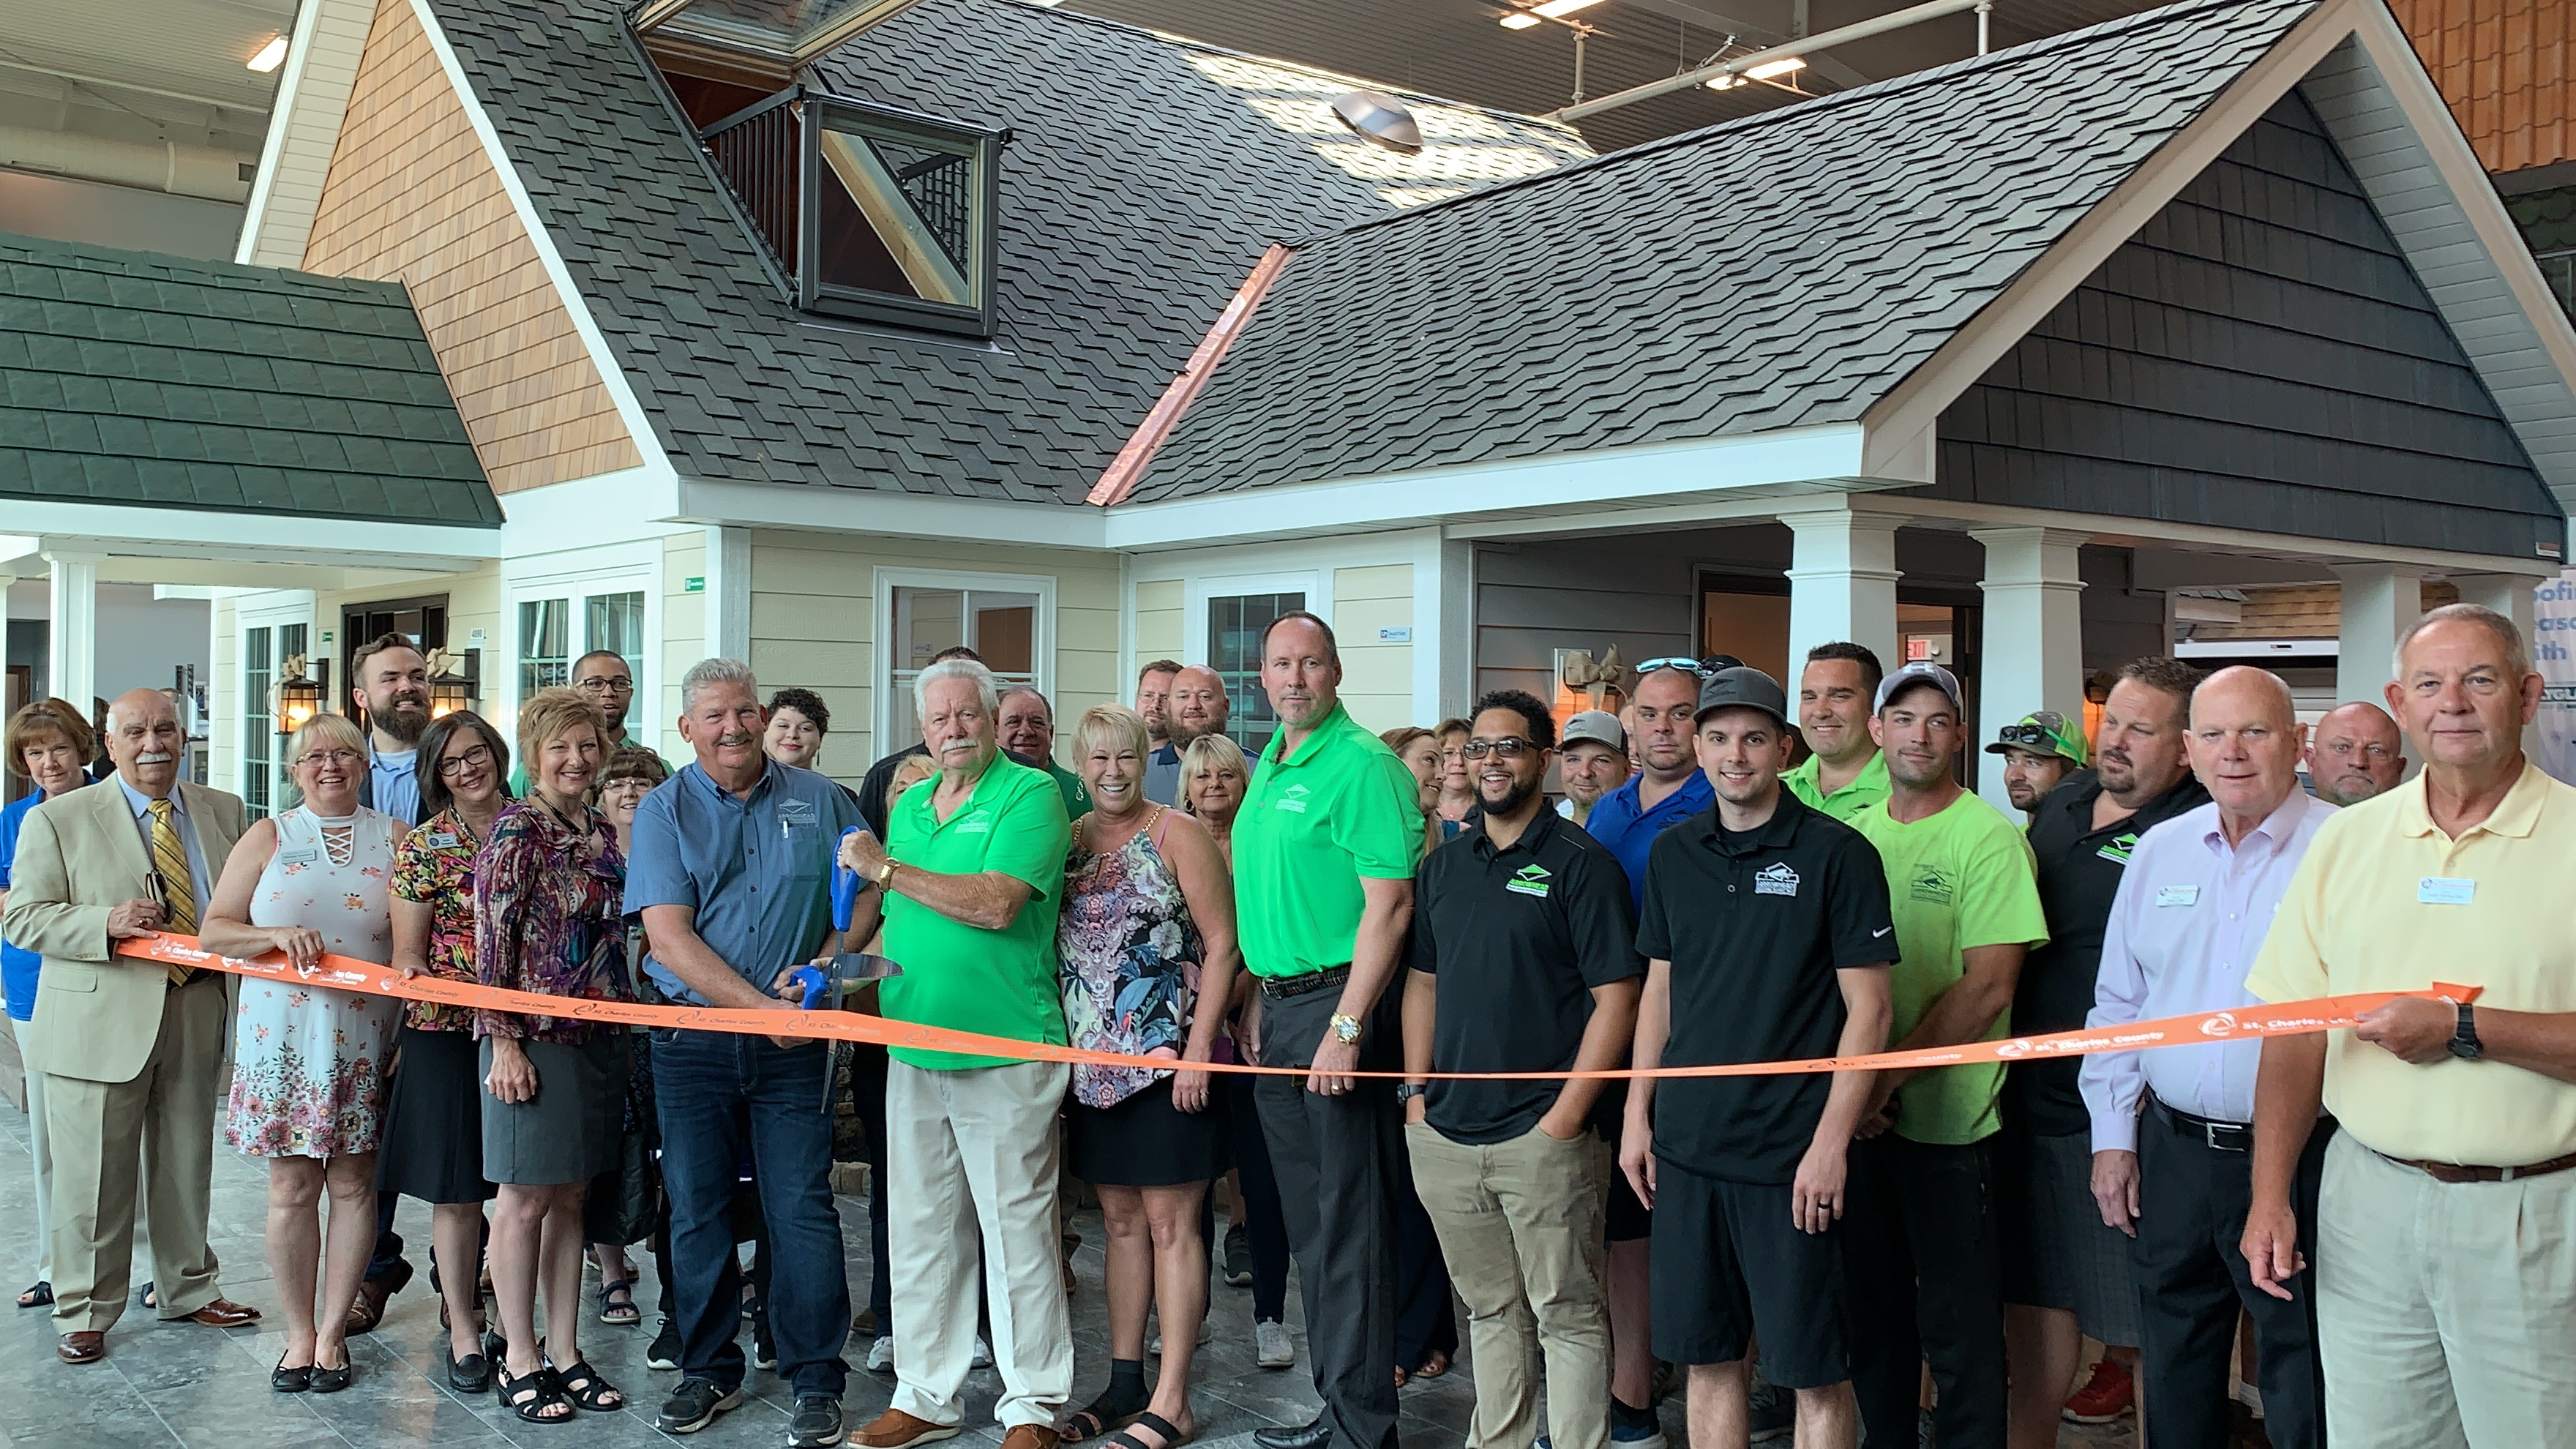 Image for Arrowhead Building Supply, Inc. Celebrates New Building with Ribbon Cutting